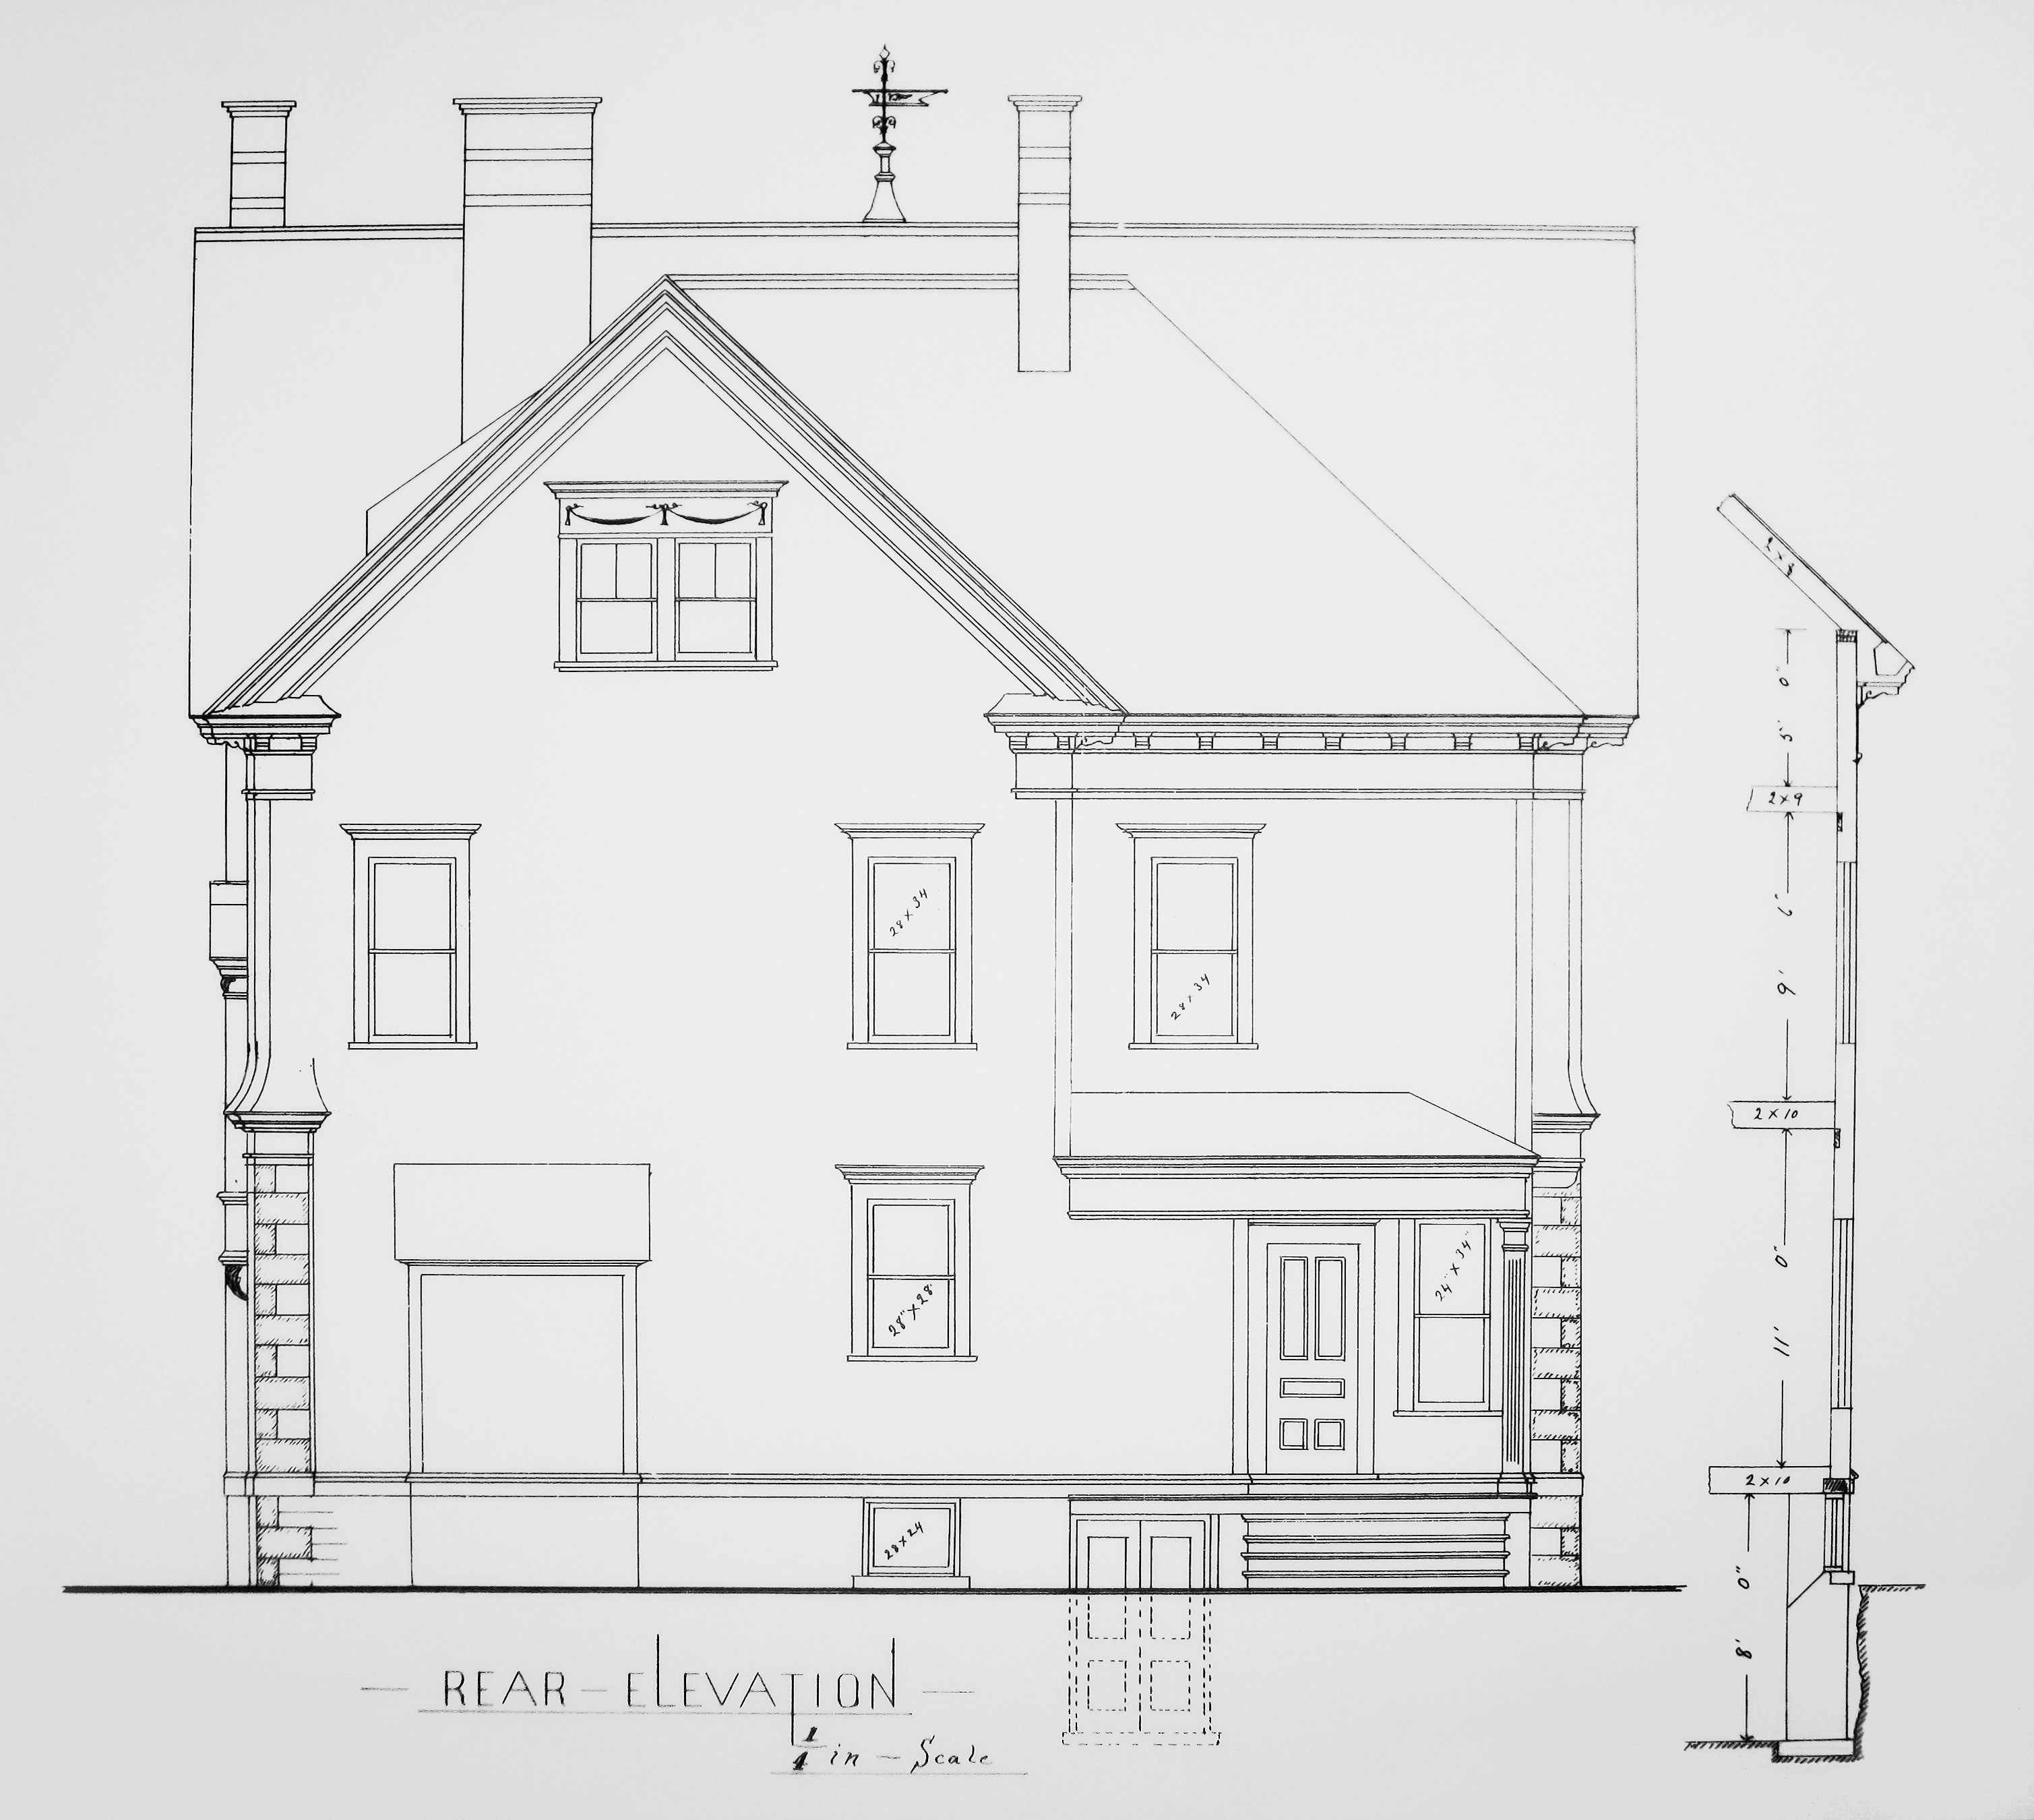 Architectural documents john ashbery 39 s nest for What is rear elevation